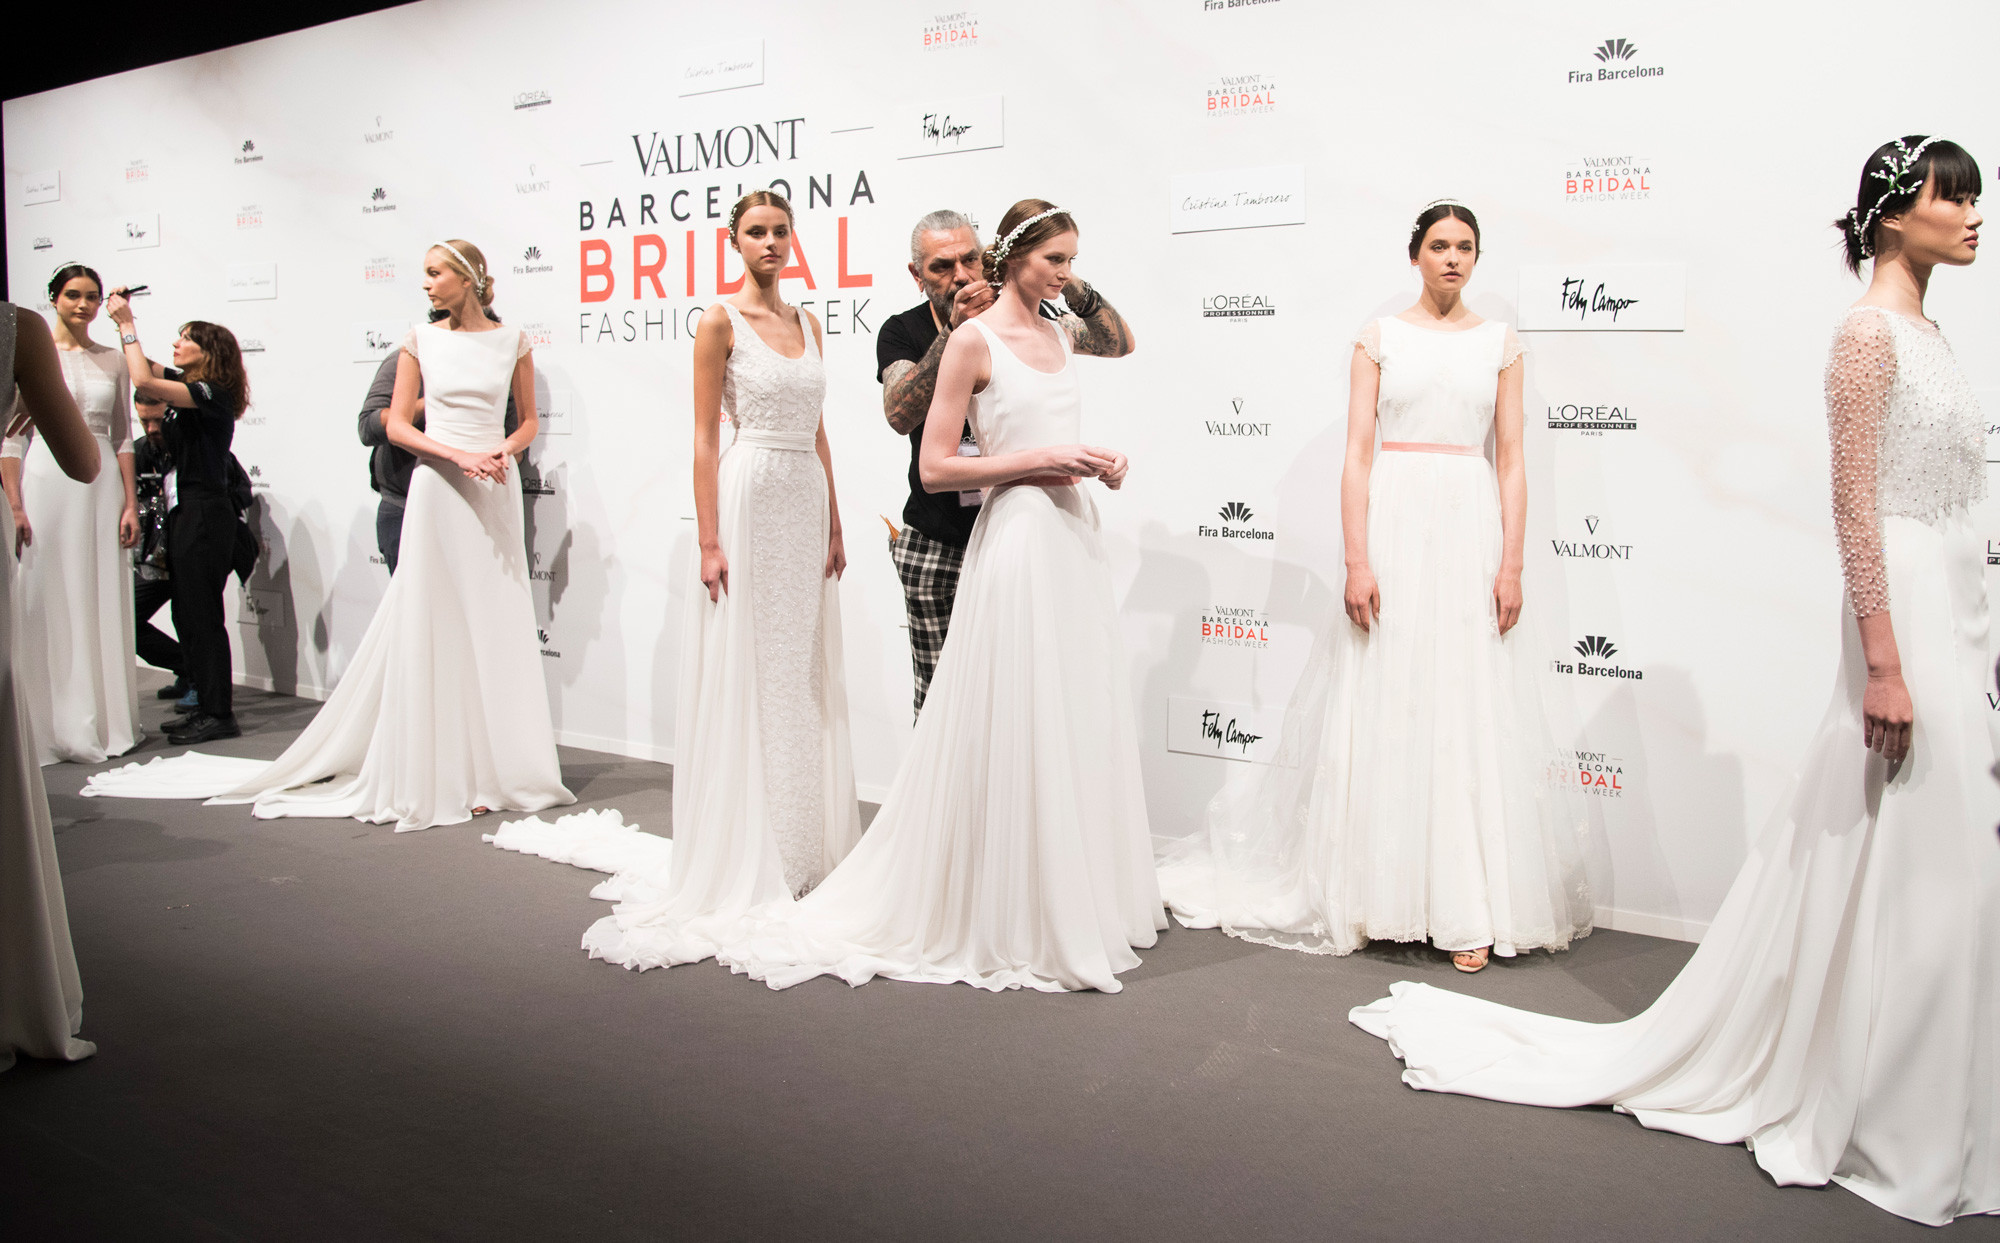 Valmont - Barcelona Bridal Fashion Week